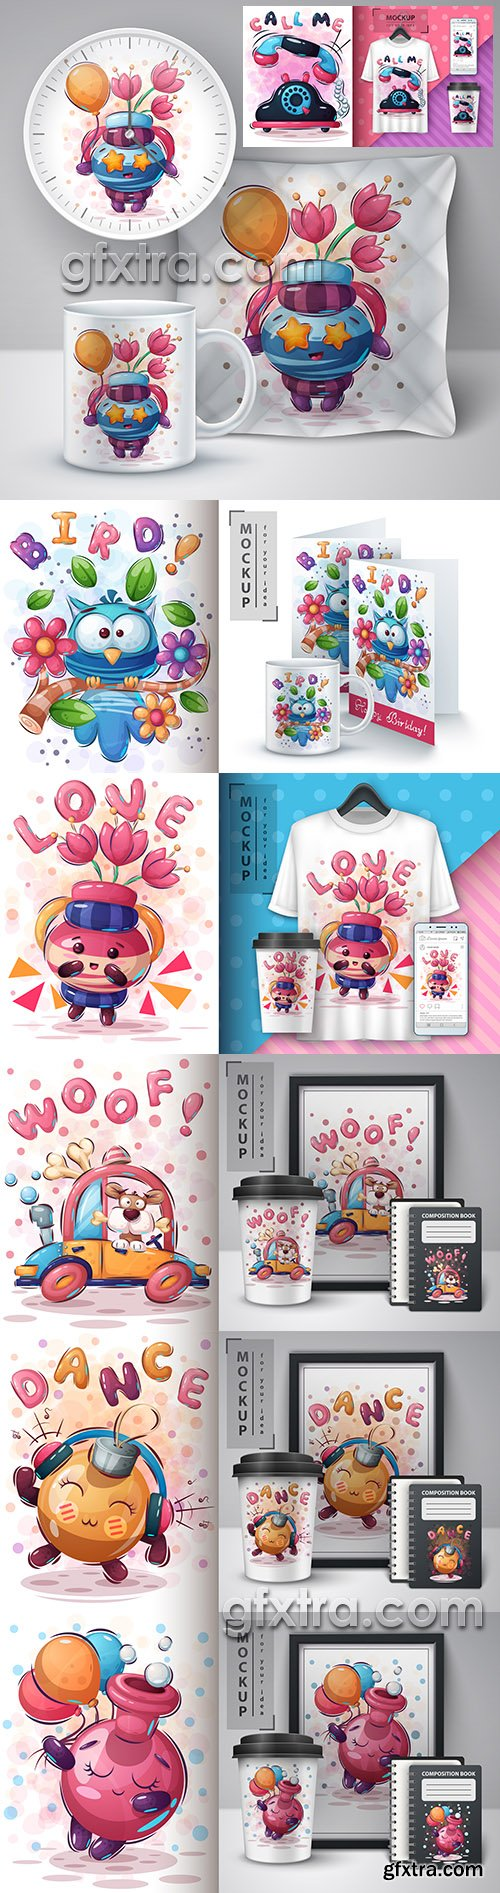 Design 3d t-shirts with mult funny characters 2